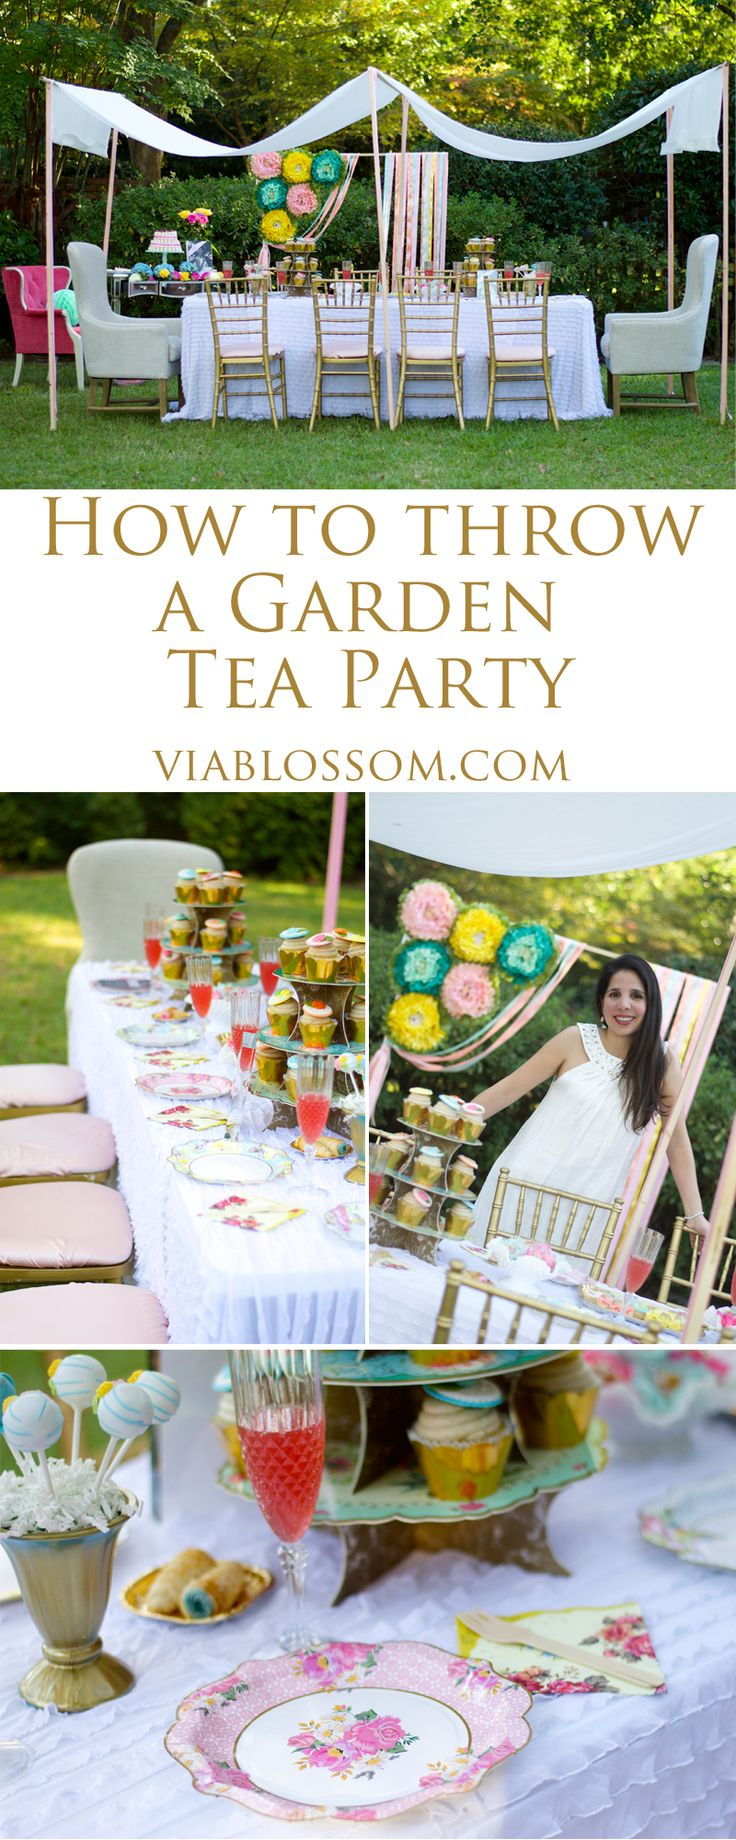 Mad hatter tea party decoration ideas - Gorgeous Tea Party Decorations And Ideas For A Fabulous Tea Party